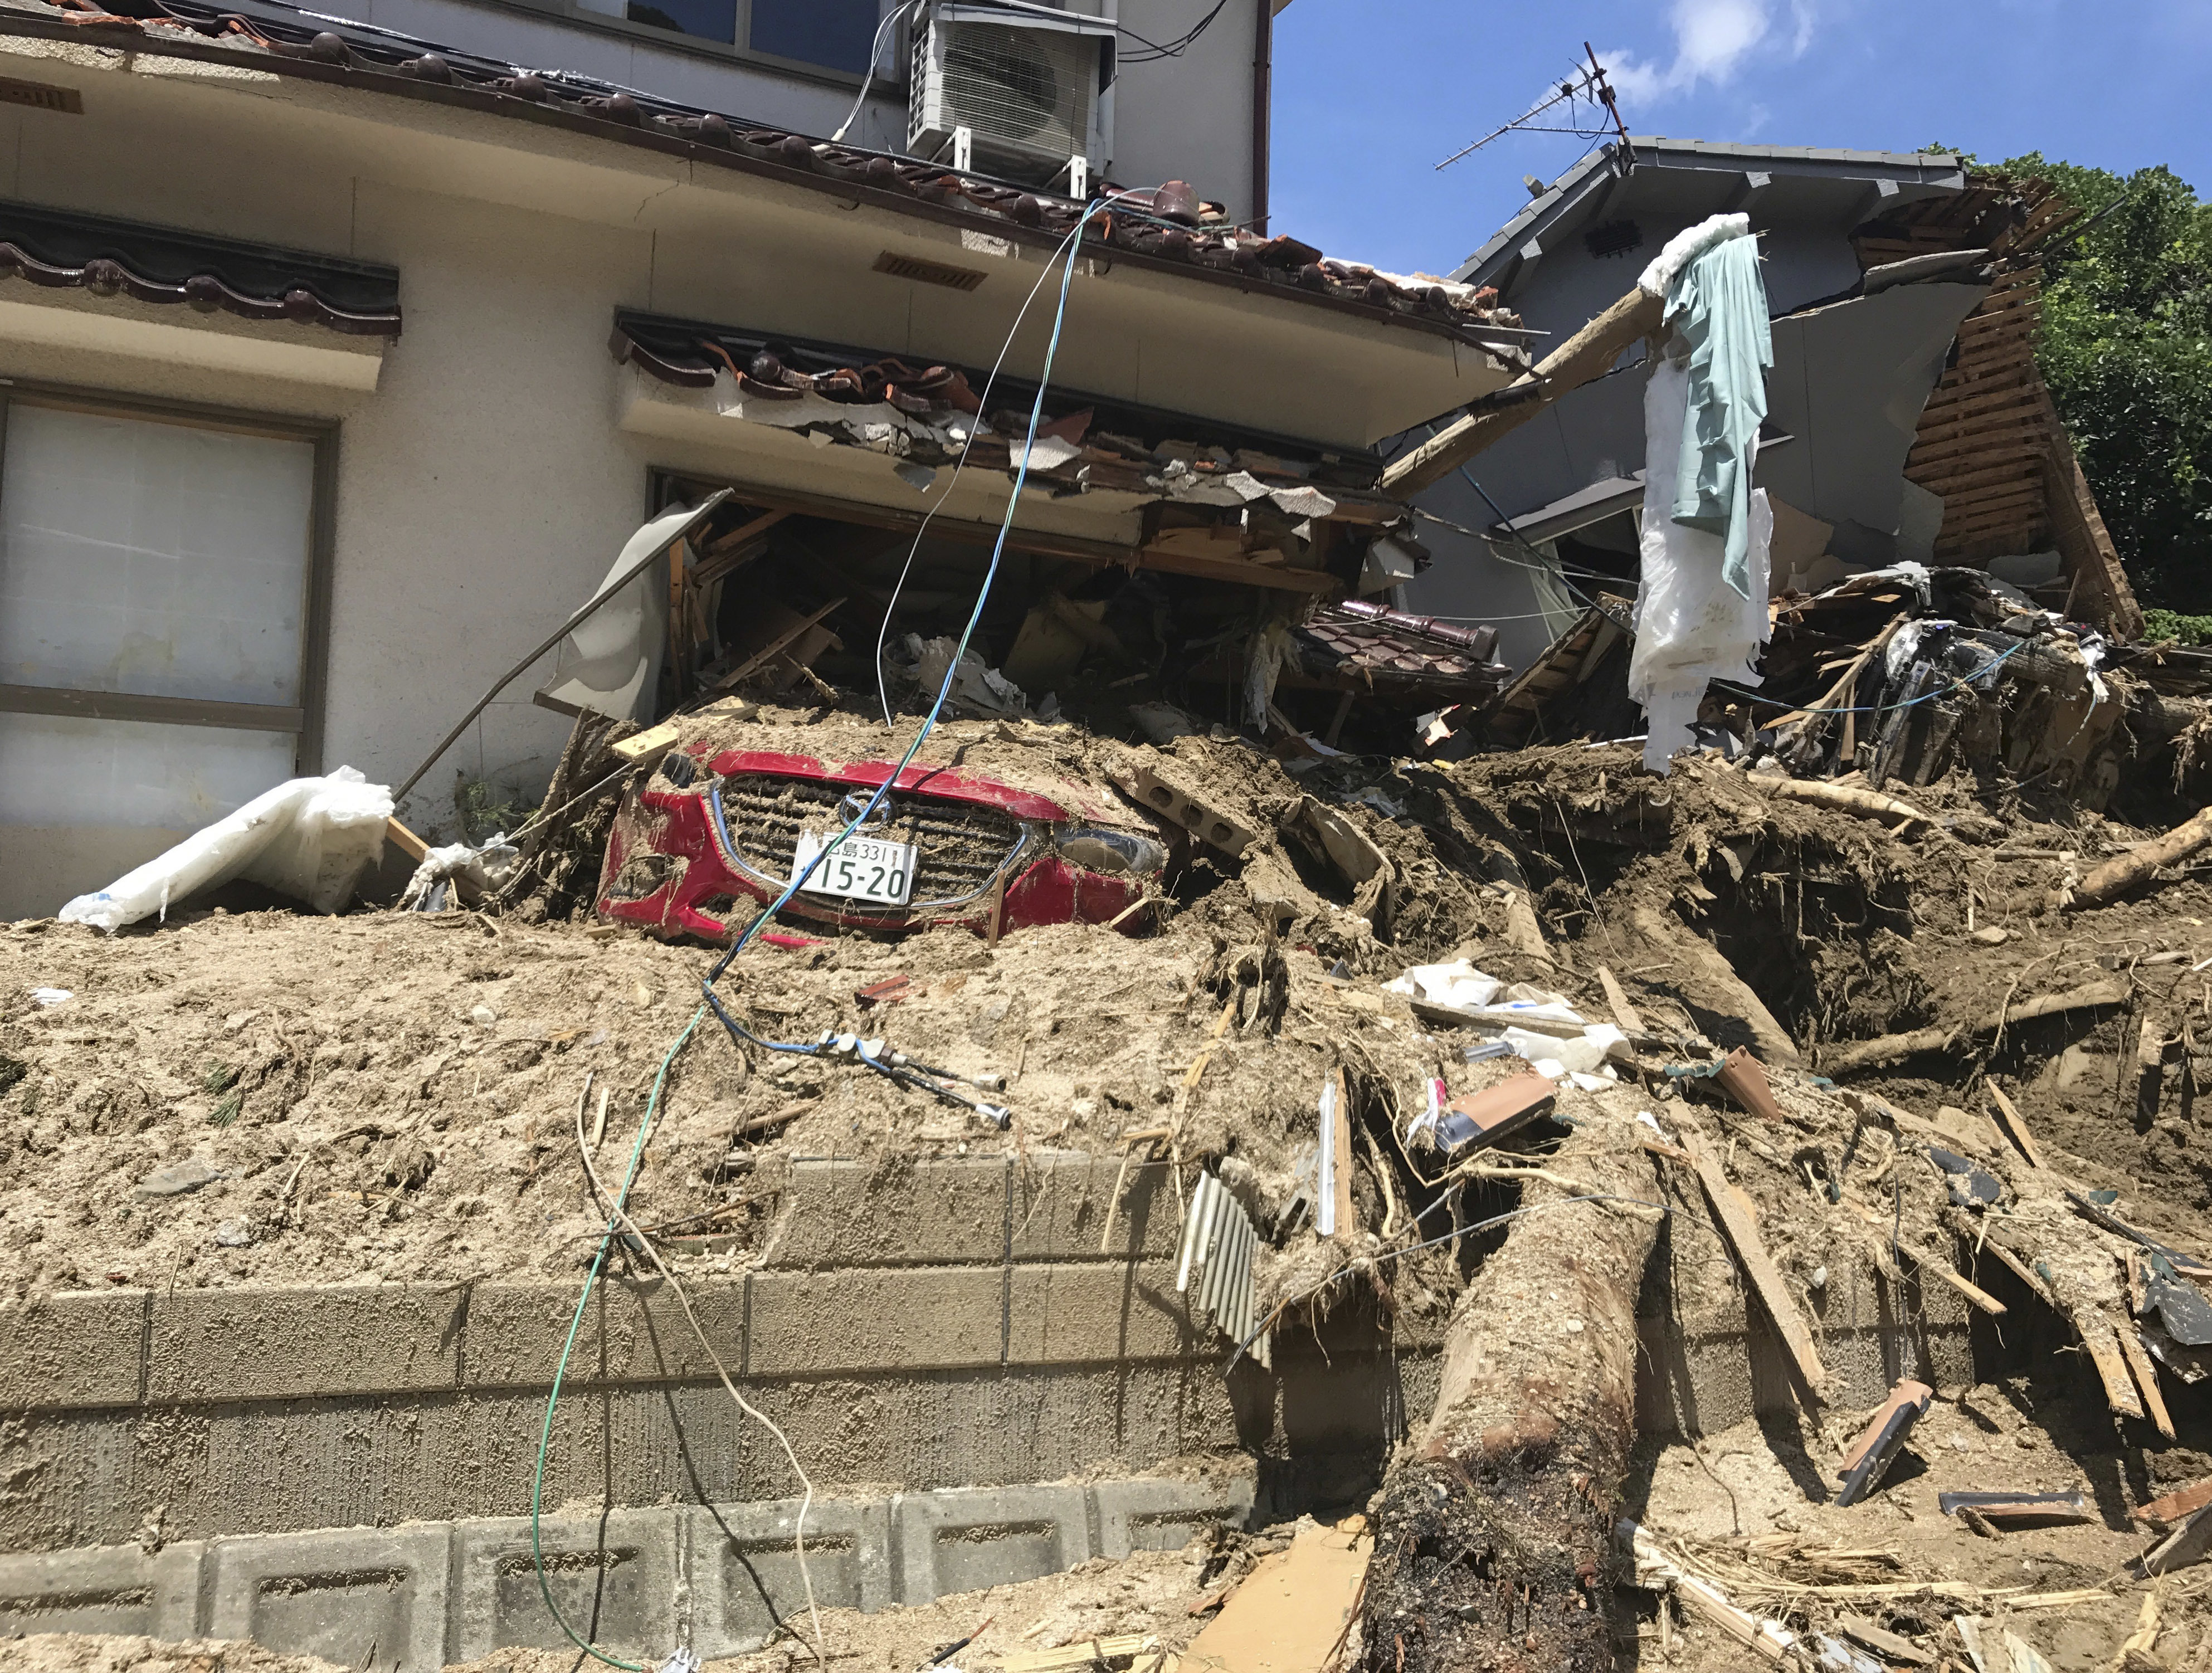 A car is covered with mud as houses are damaged after a mudslide caused by heavy rains in Hiroshima, southwestern Japan, Tuesday, July 10, 2018. Rescuers combed through mud-covered hillsides and along riverbanks searching for dozens of people missing after heavy rains unleashed flooding and mudslides in southwestern Japan.